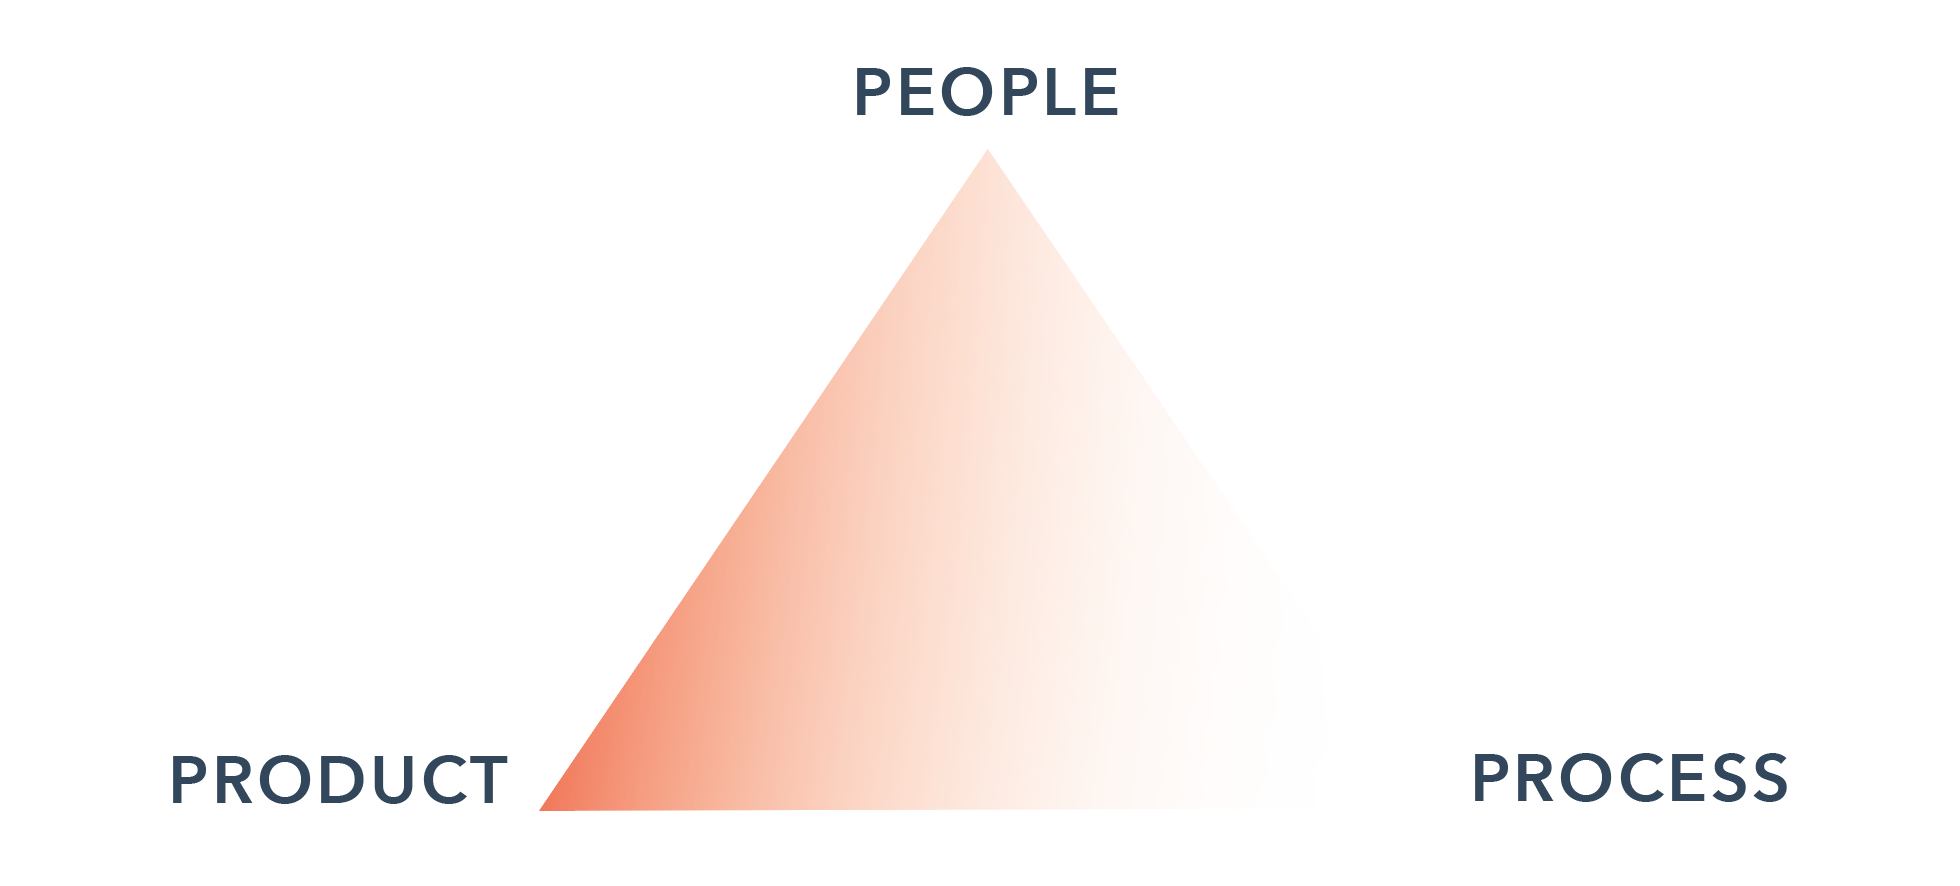 """The final triangle. """"People"""" at the top, """"Product"""" at the bottom left, """"Process"""" at the bottom right. Except this time, the shading inside highlights the connection between """"People"""" and """"Product."""""""